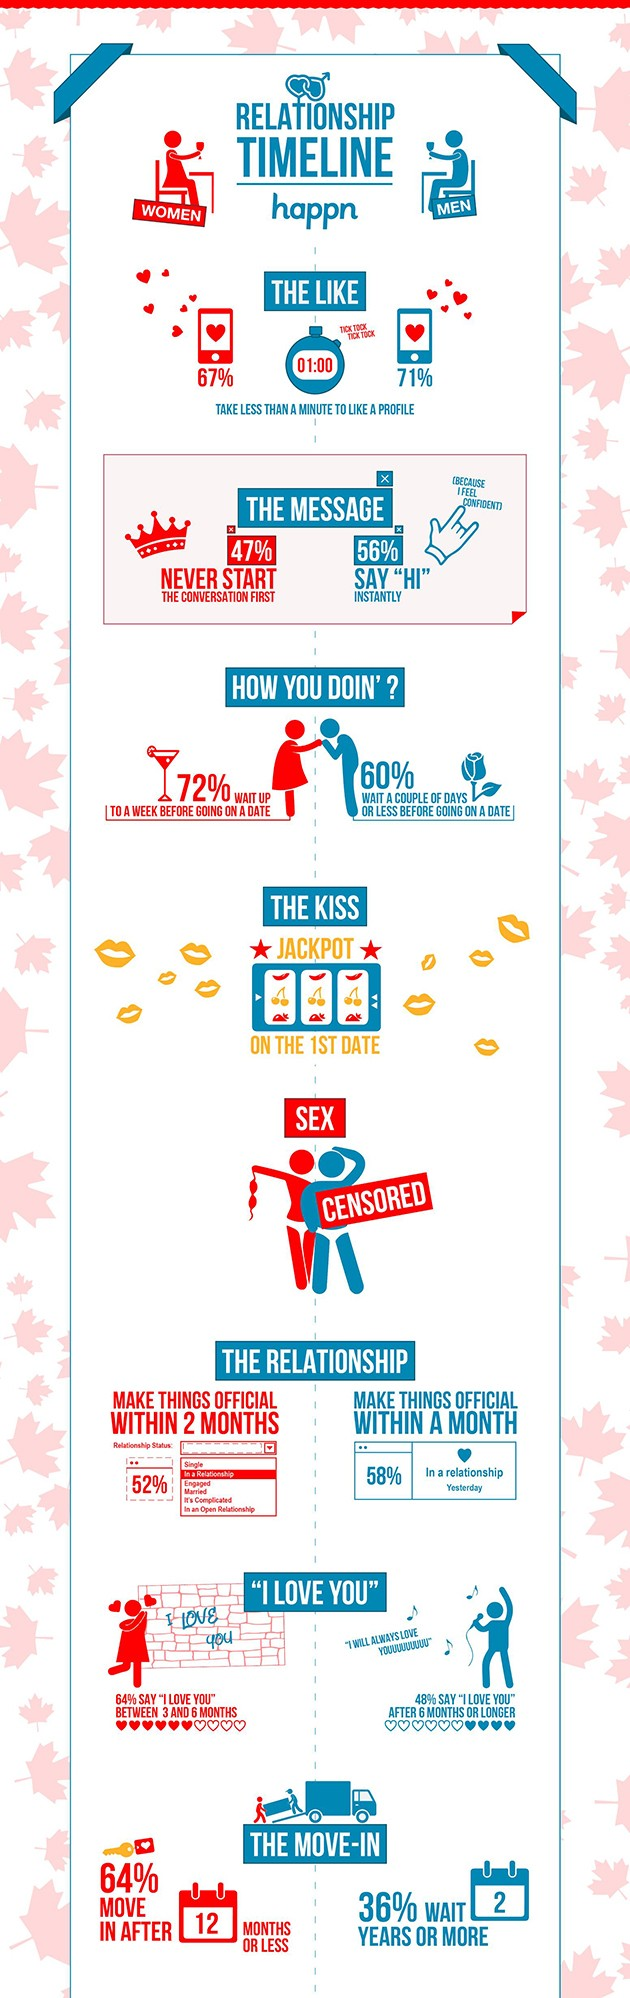 relationships-in-canada